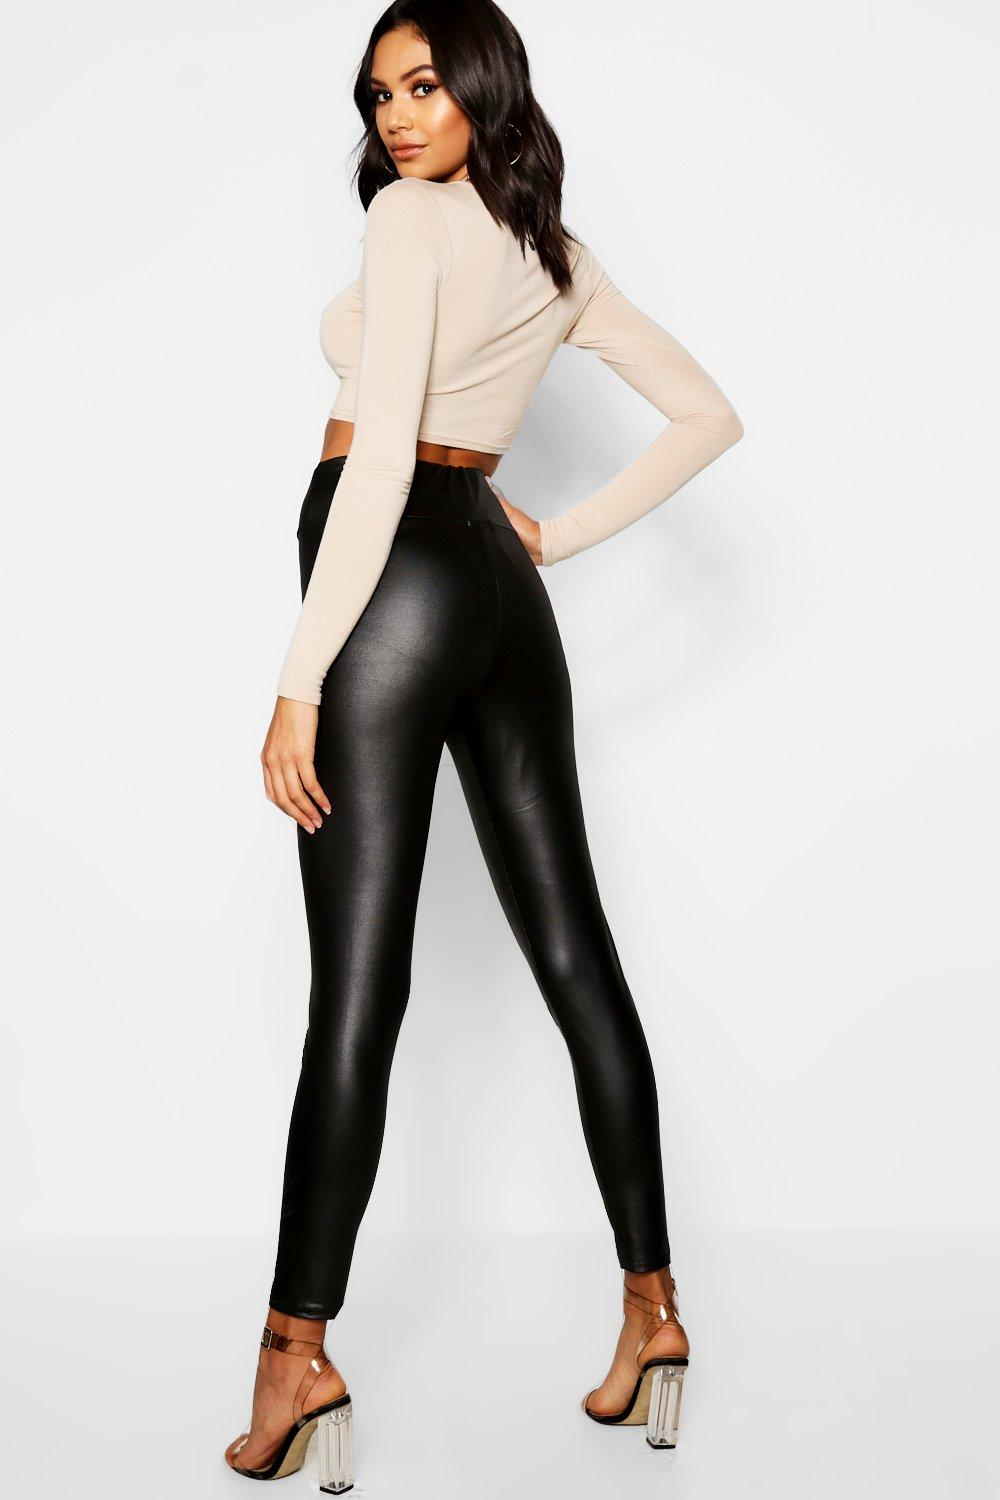 Jaylah High Waist Wet Look PU Leather Leggings - Woven Trends